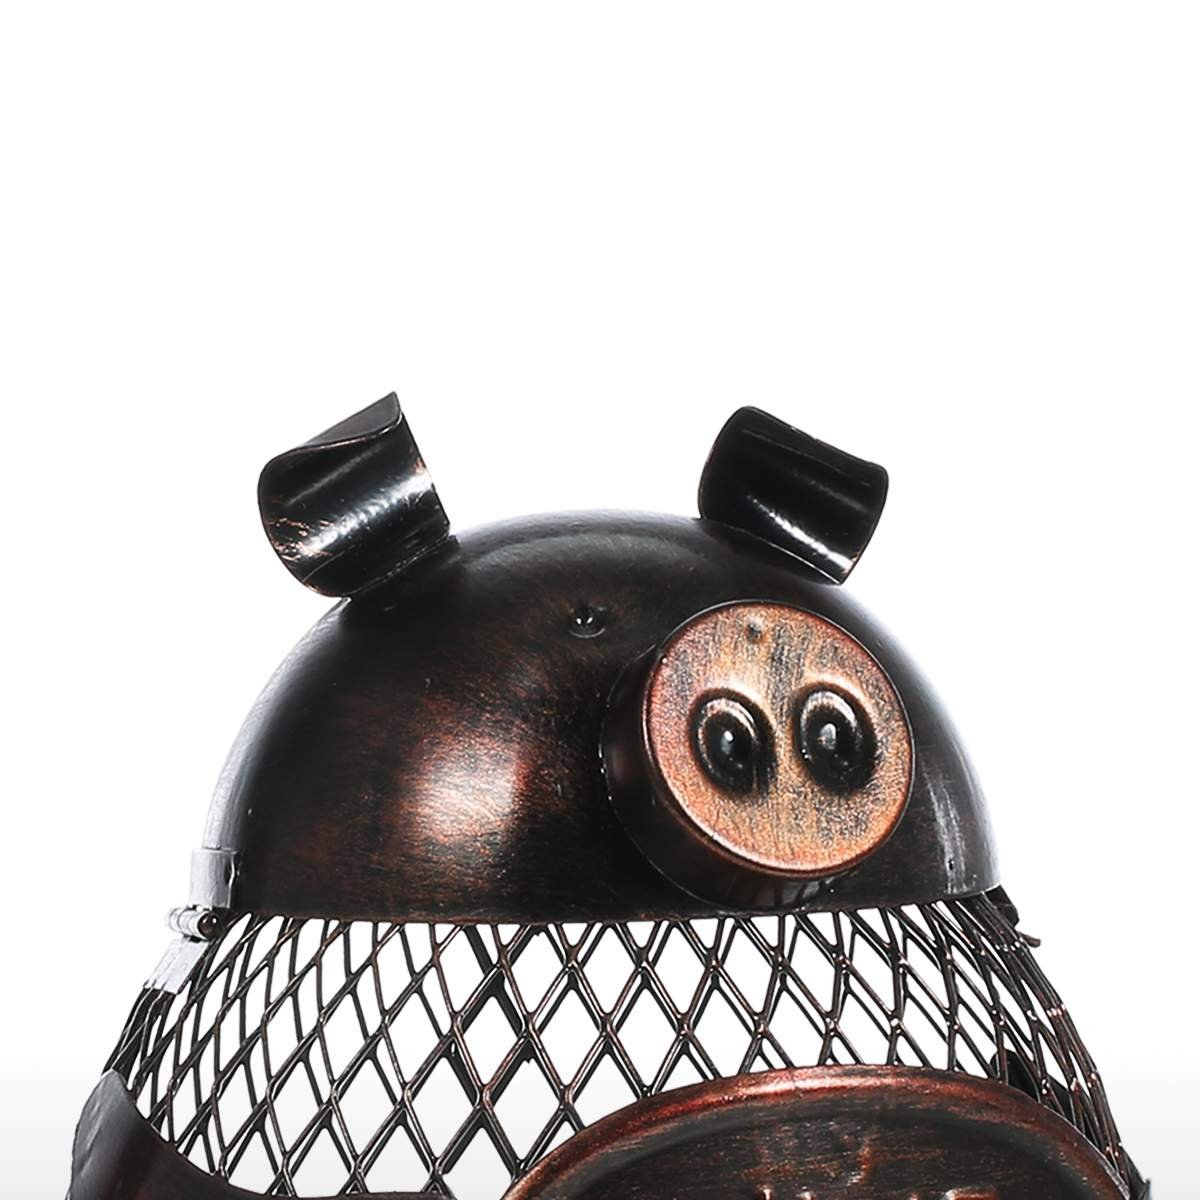 Tooarts Piggy Wine Barrel Cork Cage Container Metal Sculpture Handicraft Gift Home Decor by Tooarts (Image #5)